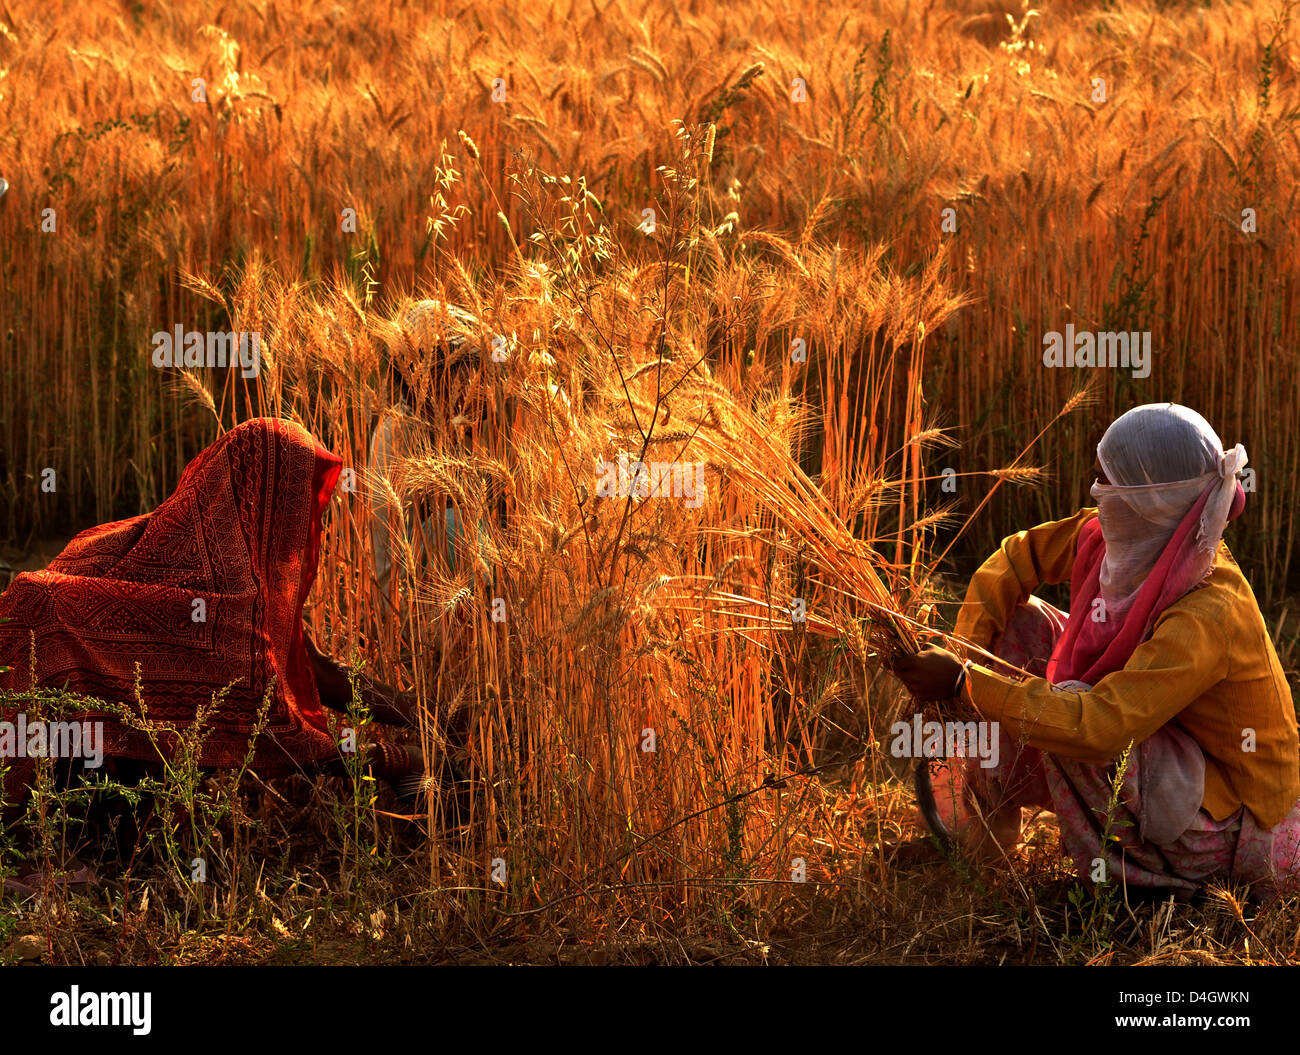 harvest hindu single women This articles discusses position of hindu women in the hindu society during ancient and modern times as well as what hindu scriptures say about women.